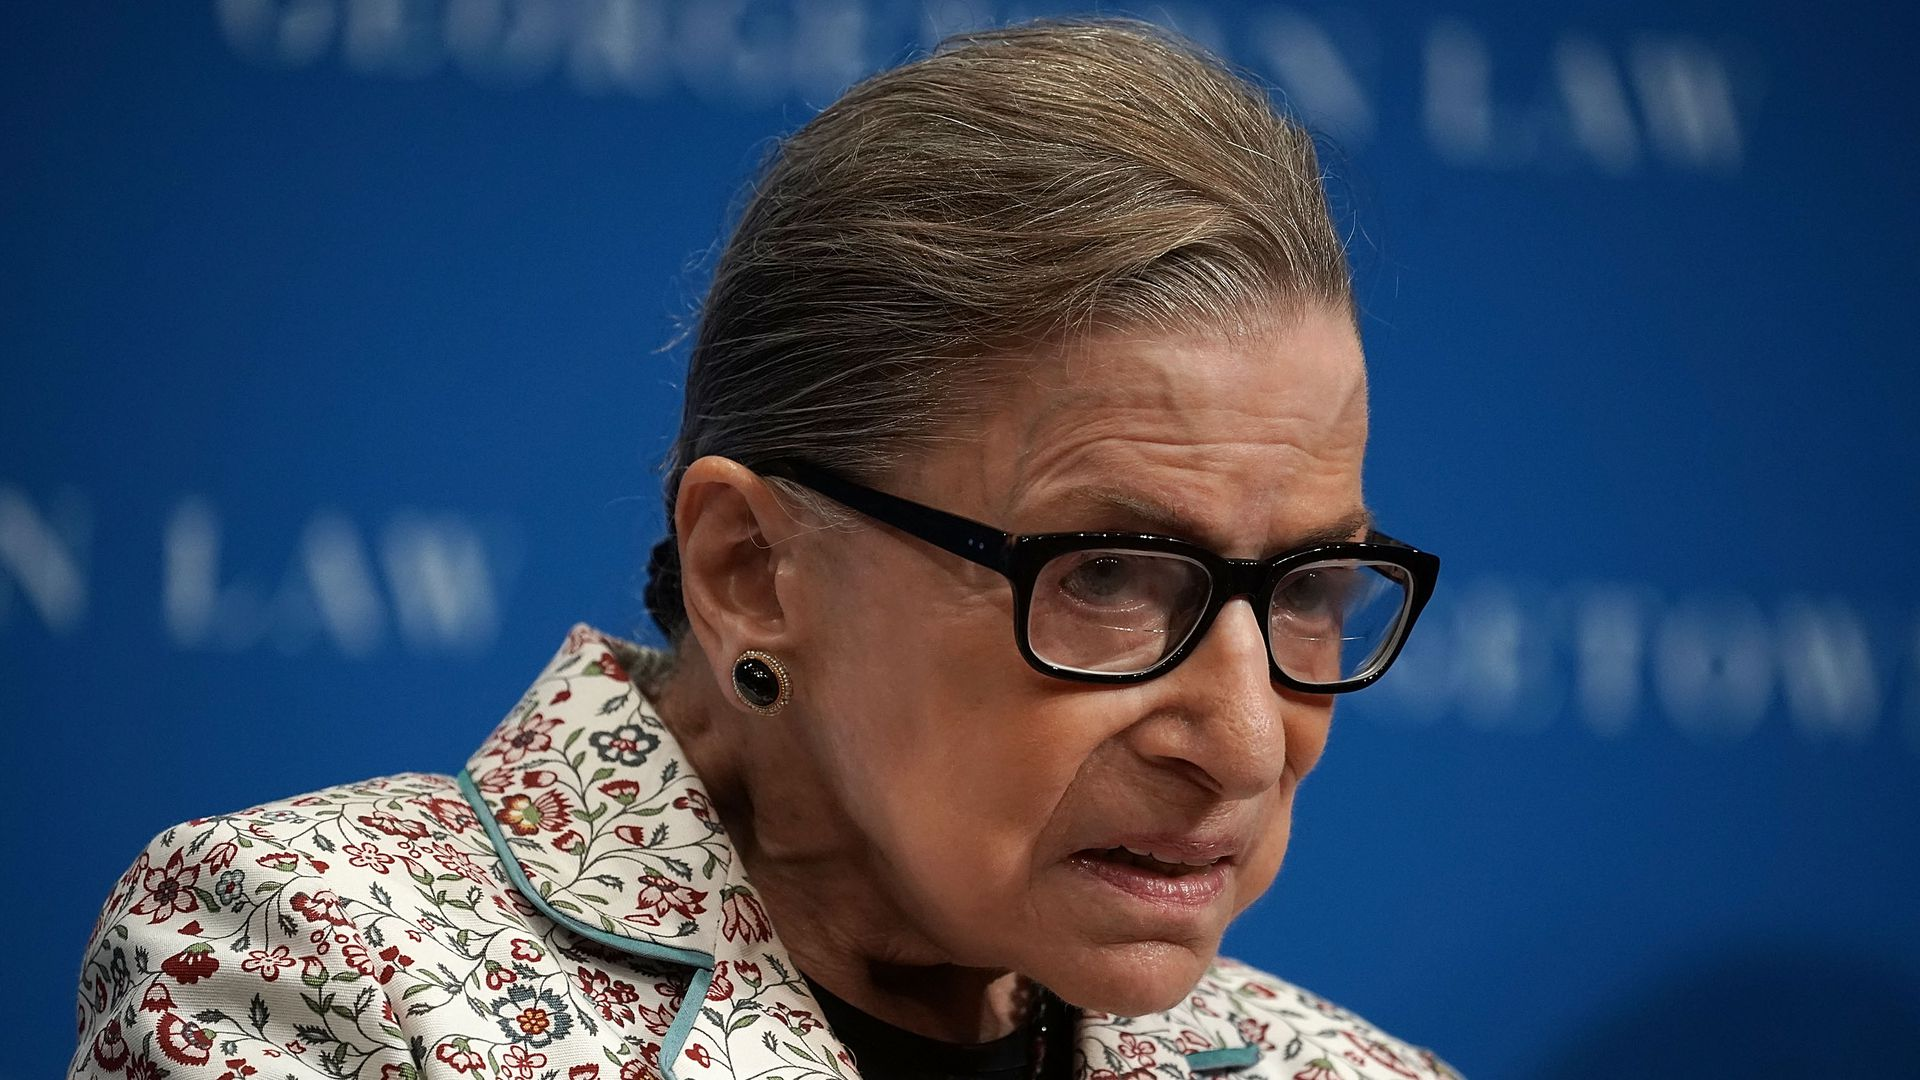 Ruth Bader Ginsburg looks tired.